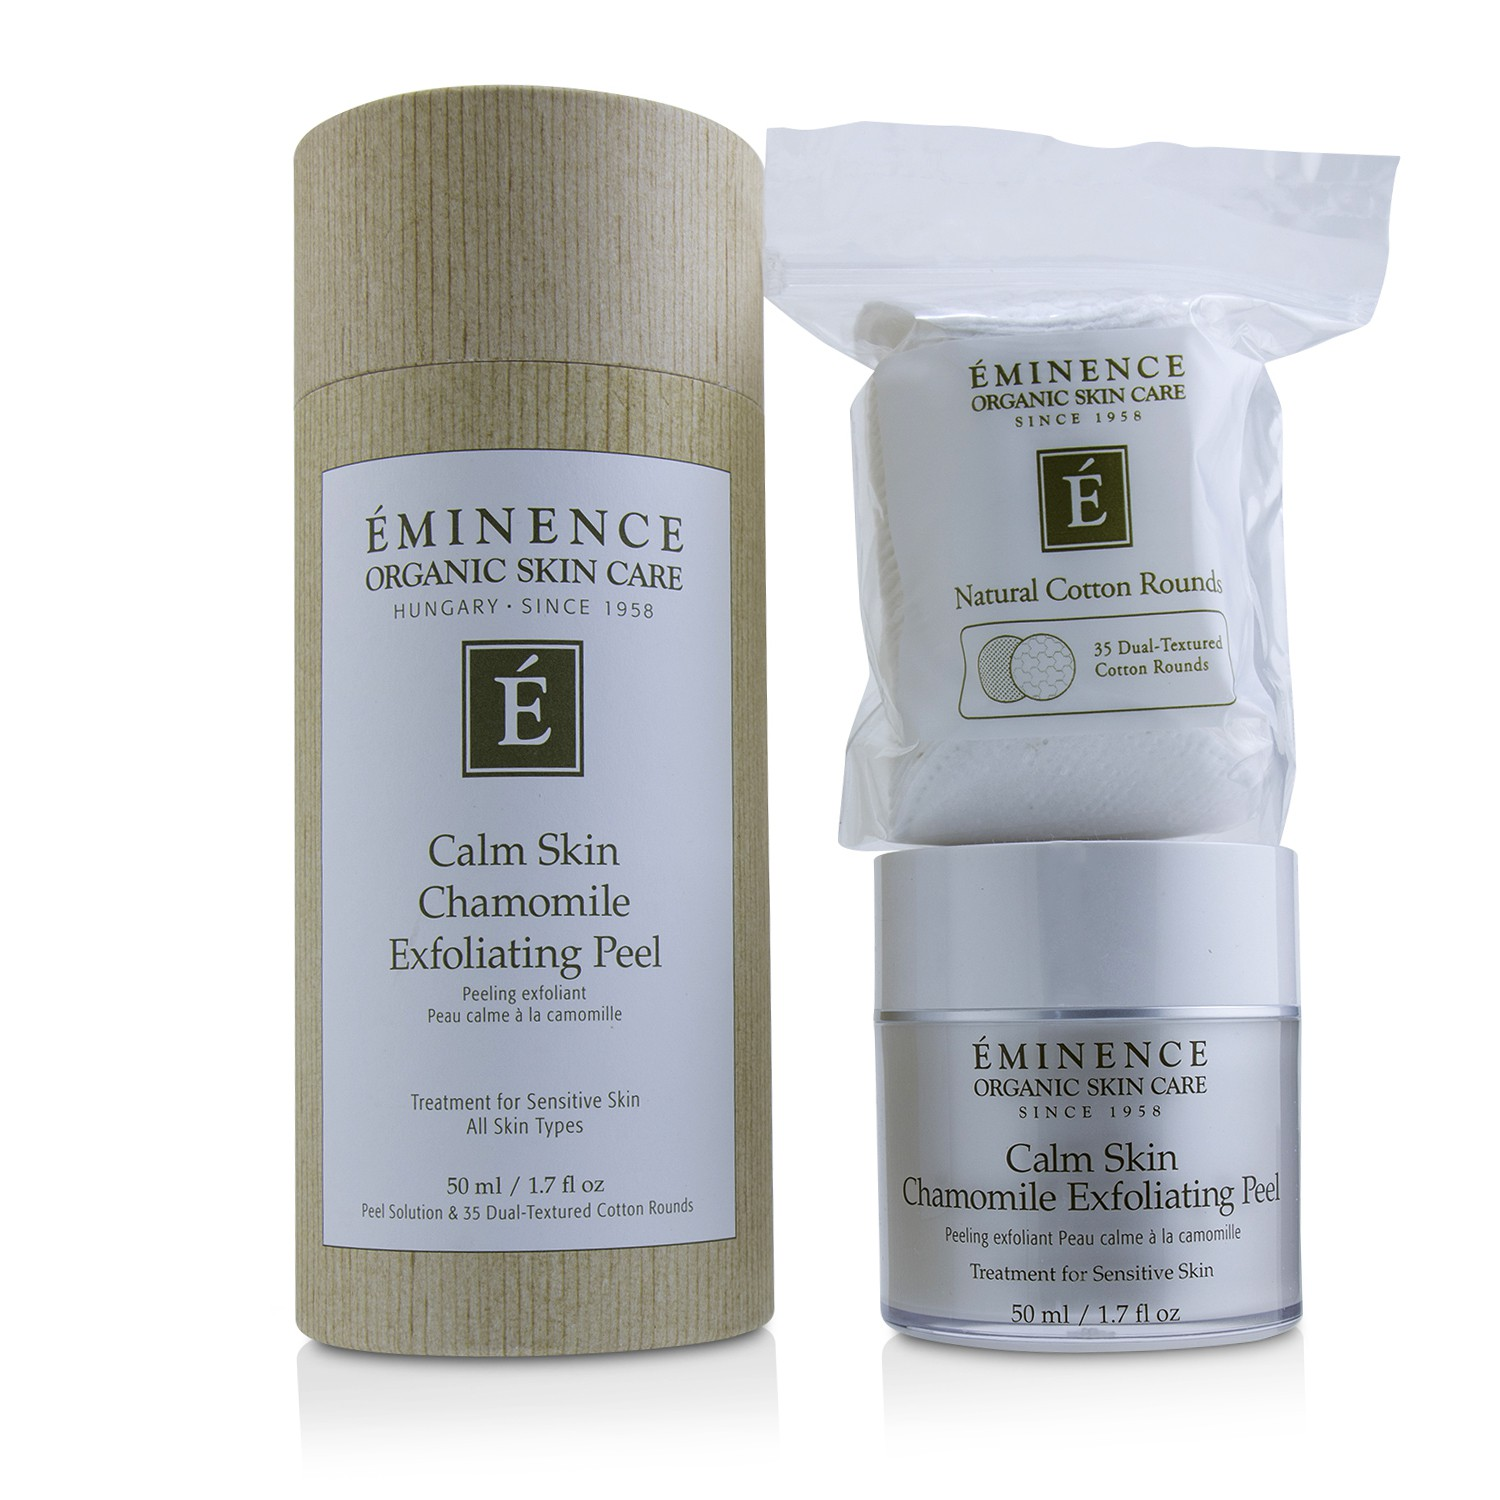 Calm Skin Chamomile Exfoliating Peel (with 35 Dual-Textured Cotton Rounds)